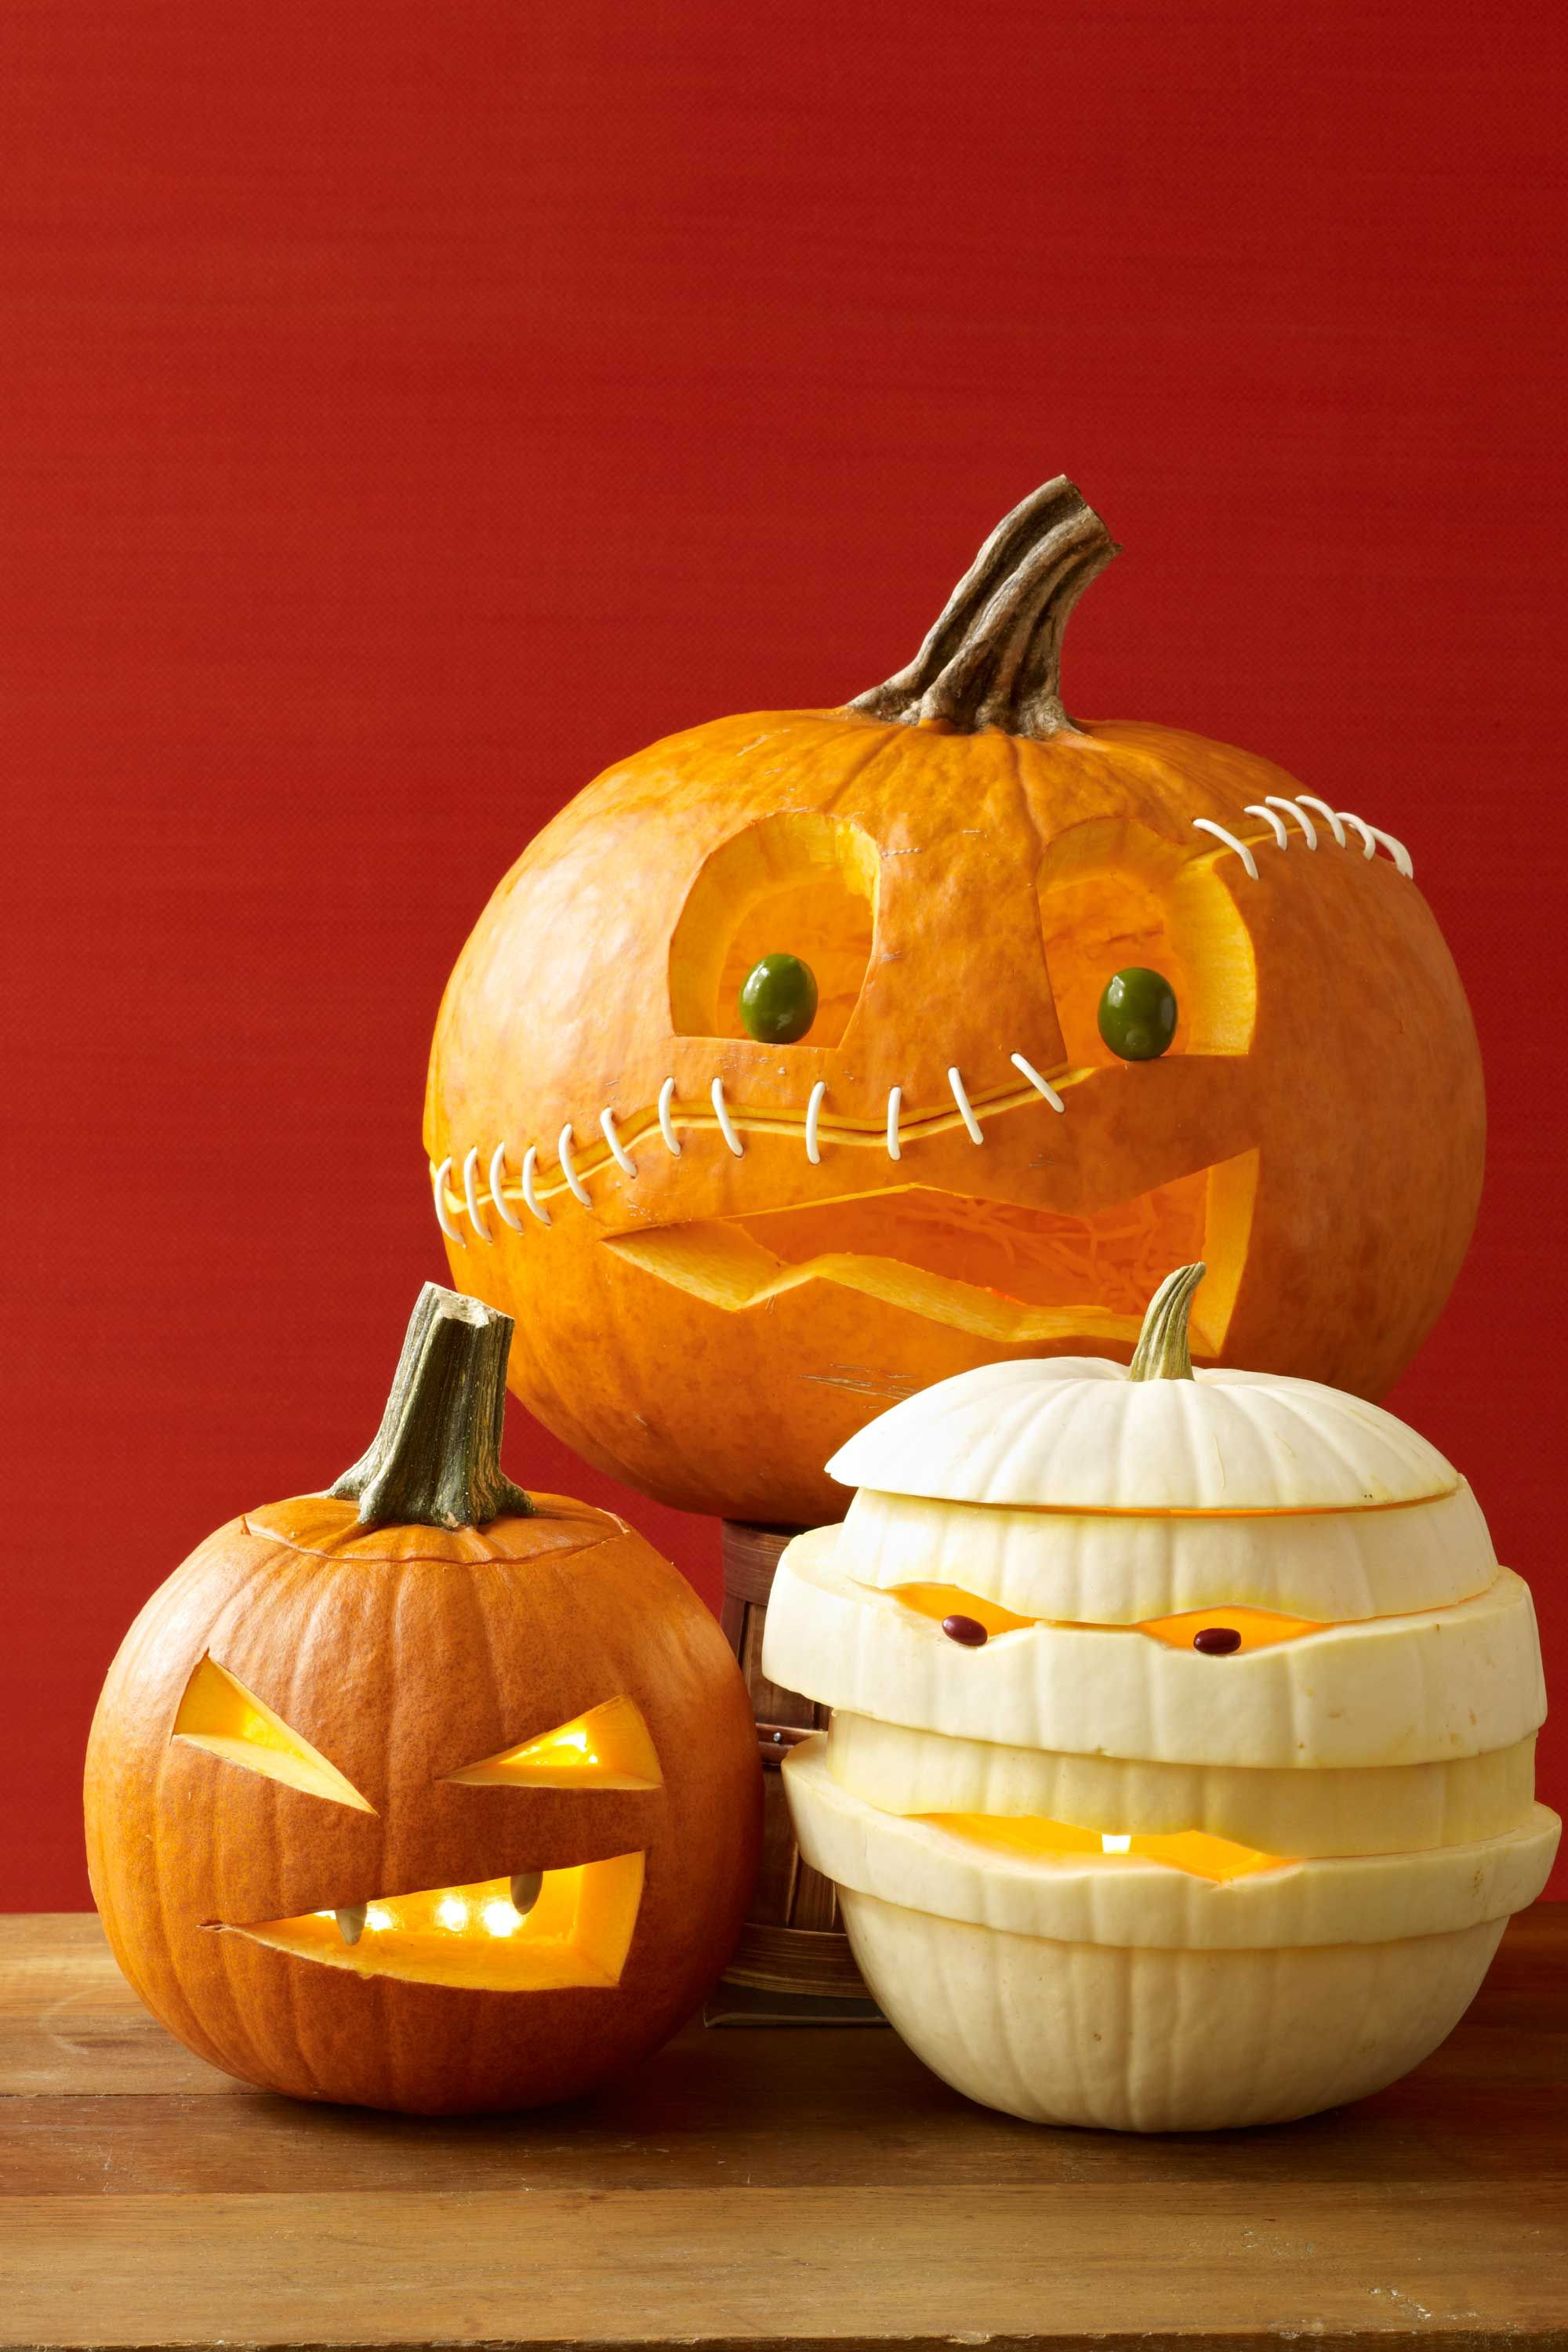 of the most creative pumpkincarving ideas holidays pumpkin